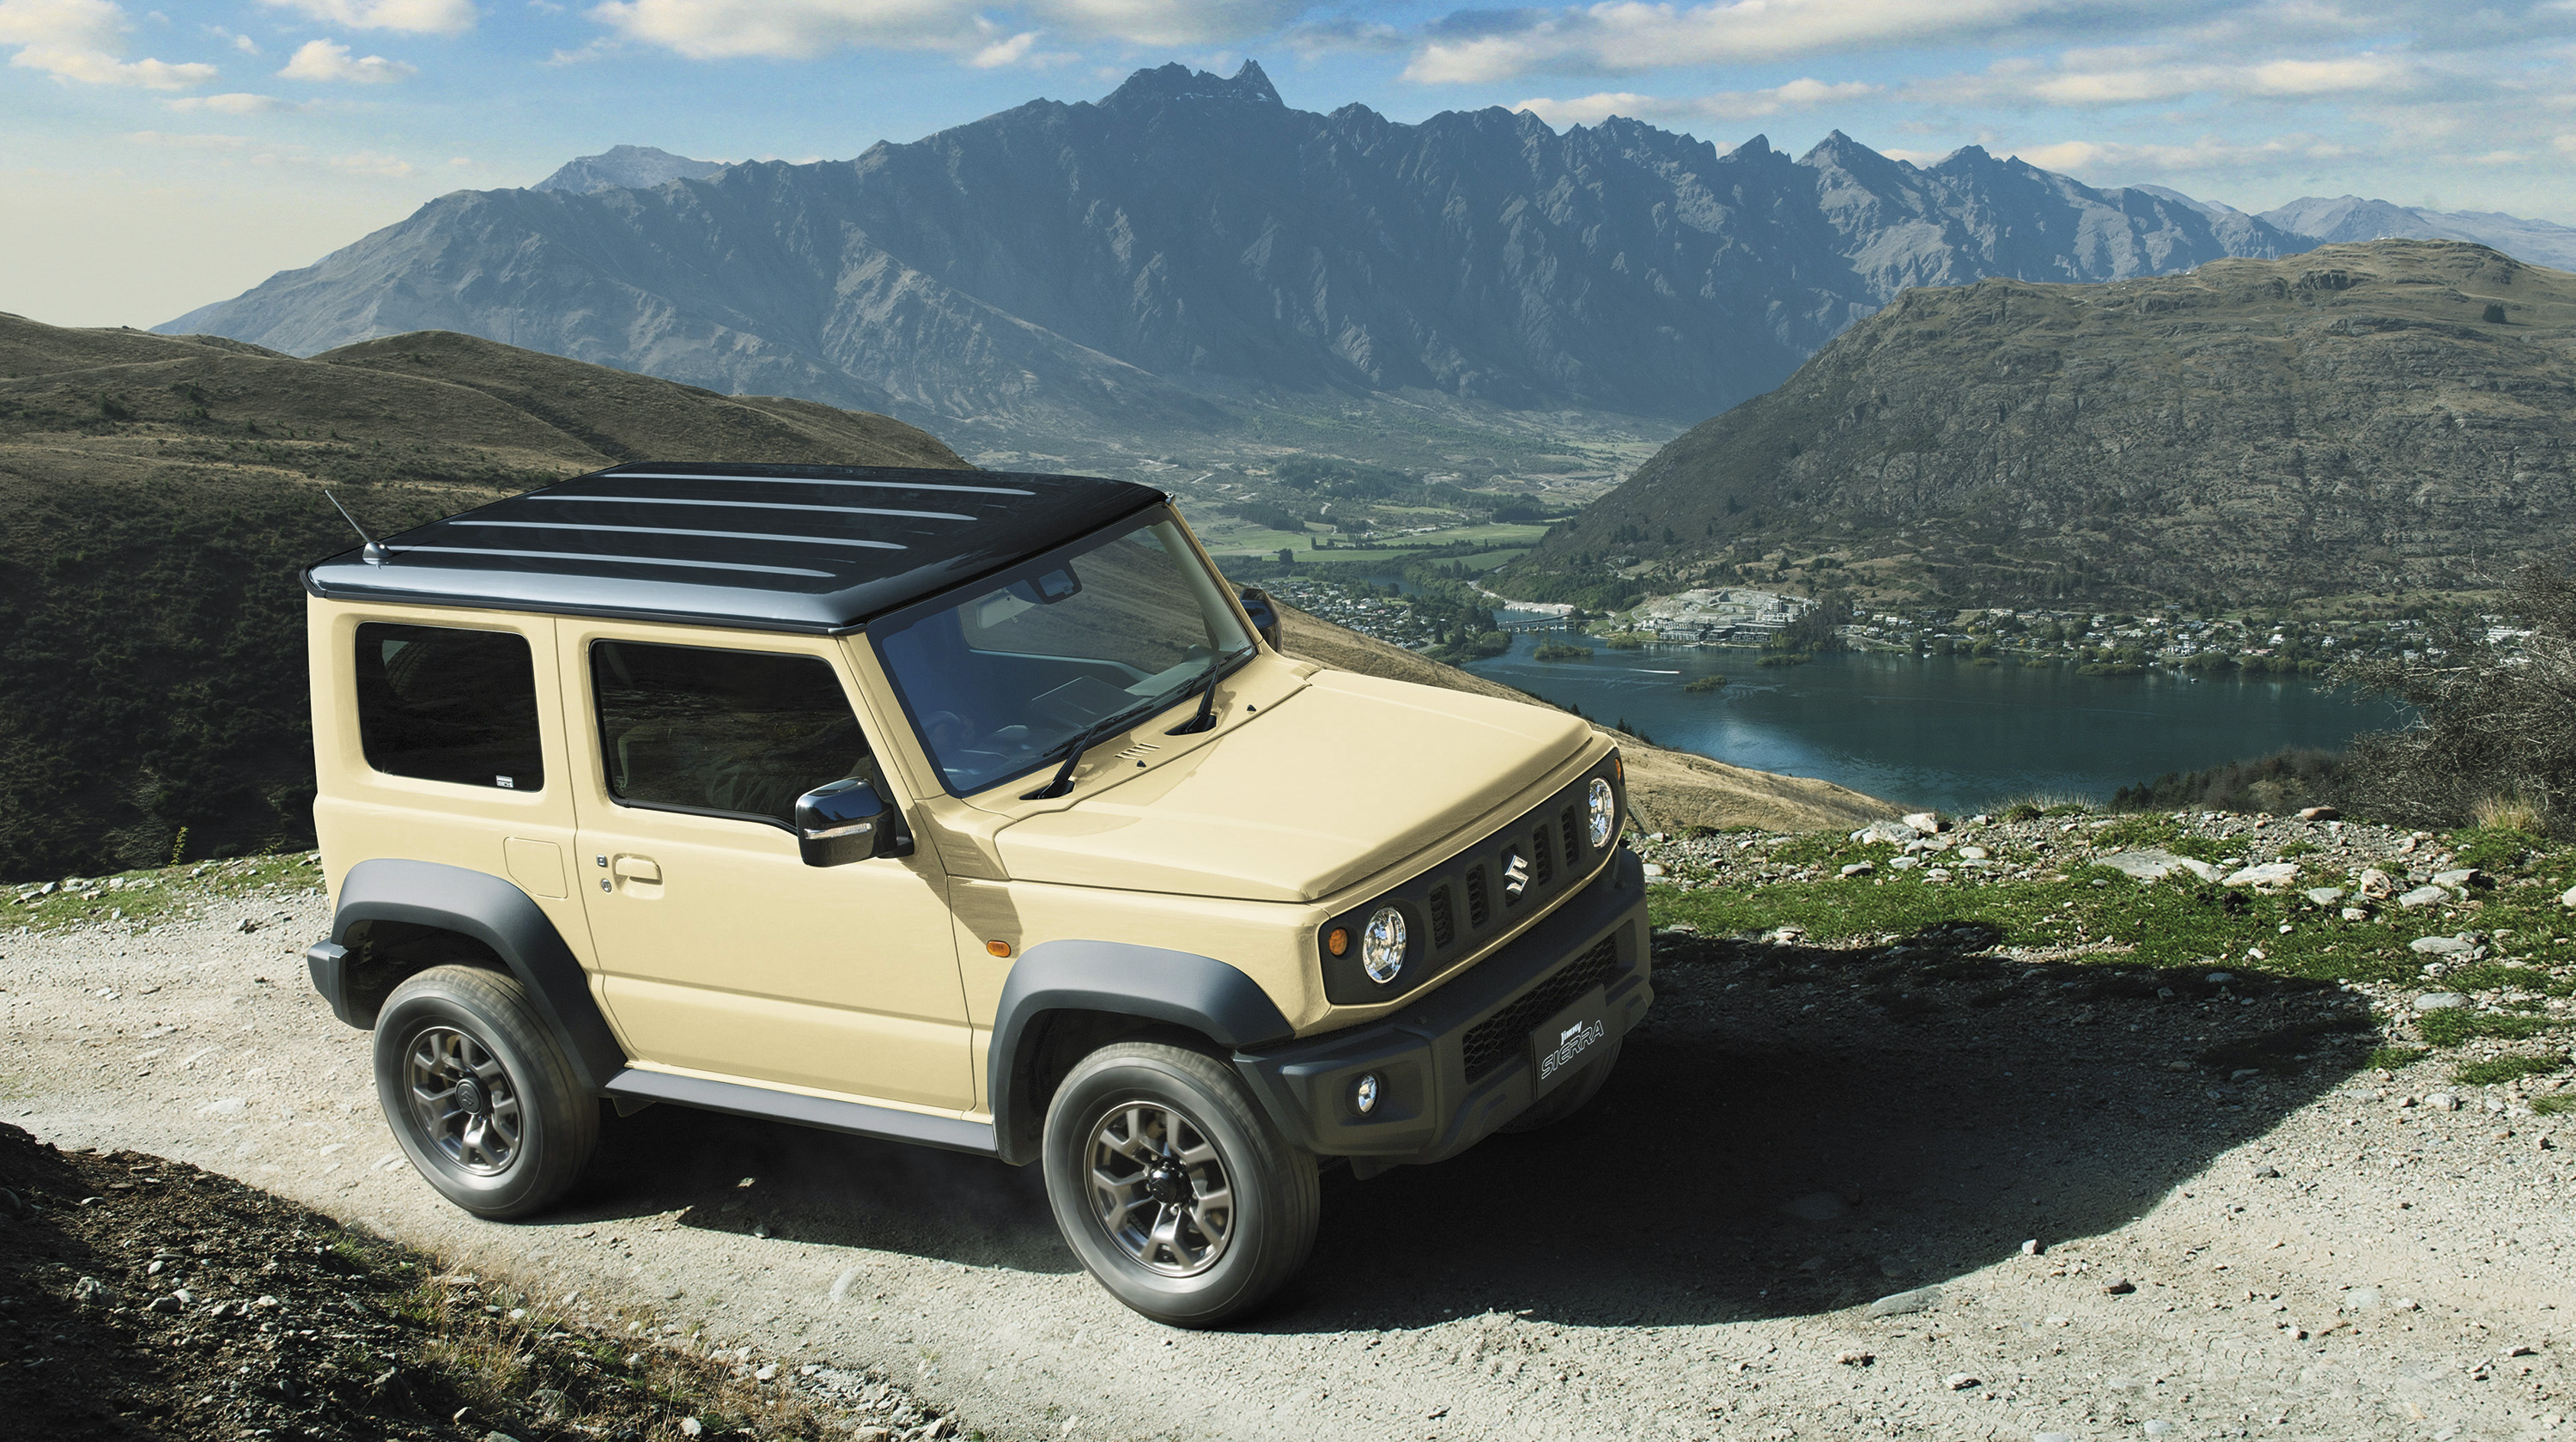 14 A 2020 Suzuki Jimny Model Pricing